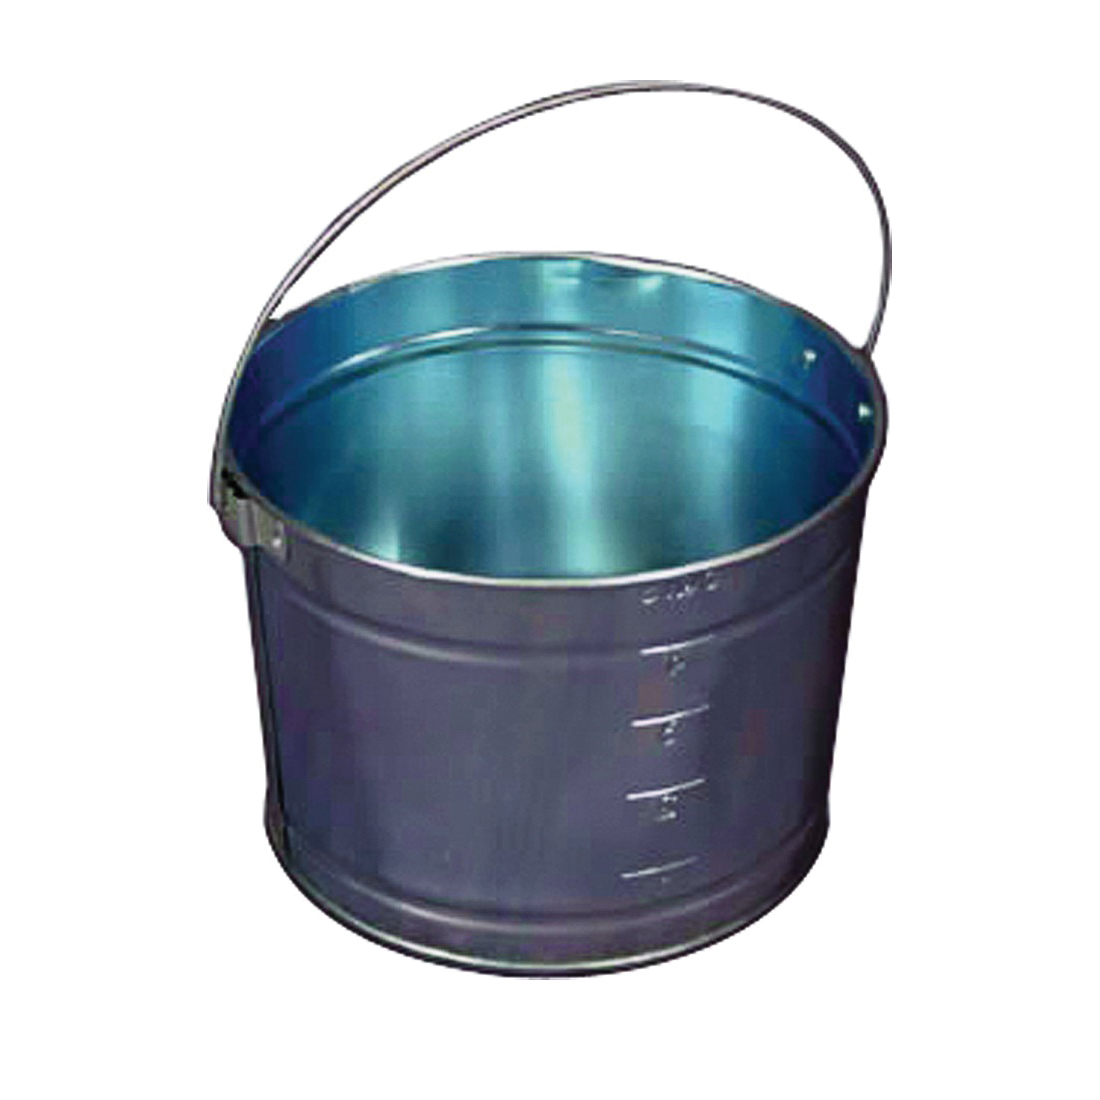 Picture of Behrens B325 Paint Pail, 2.5 qt Capacity, Steel, Galvanized